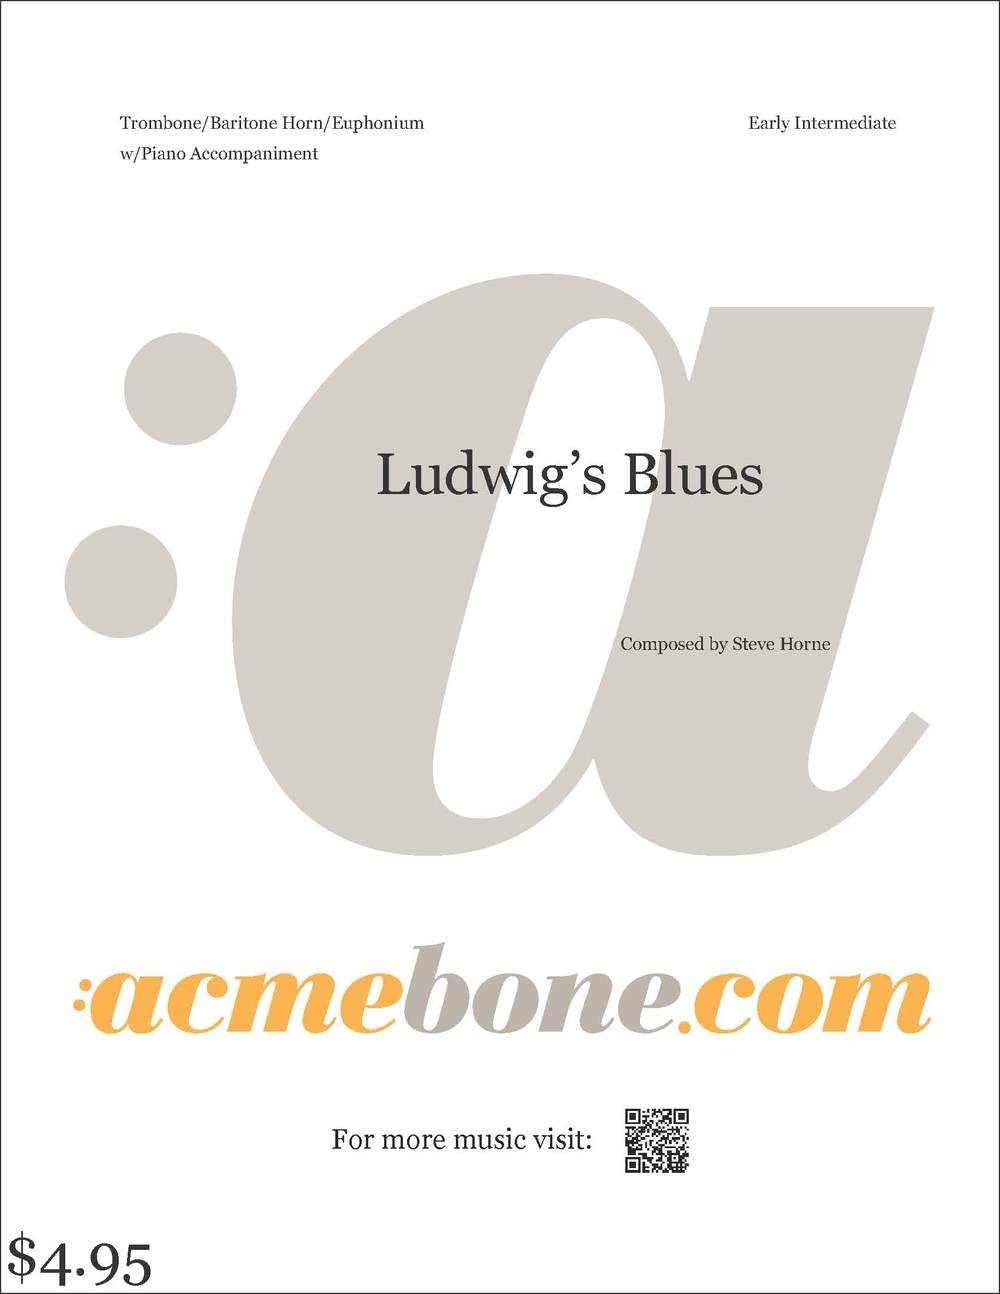 Ludwig's Blues_digital_cover_w-bo_price.jpg